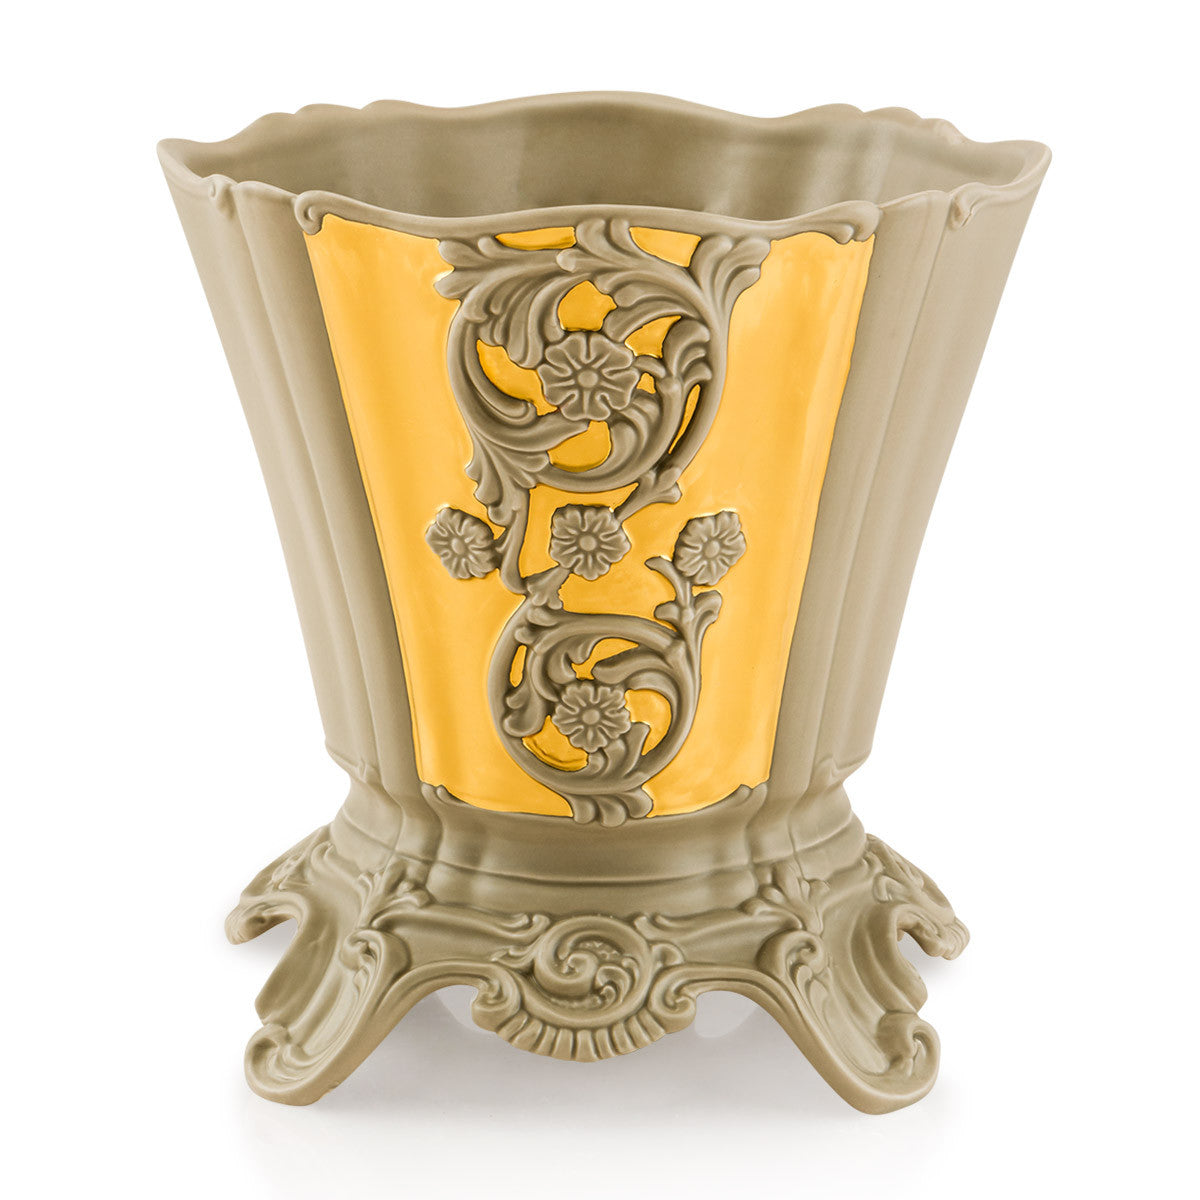 Ceramic cachepot with gold accents | Roma